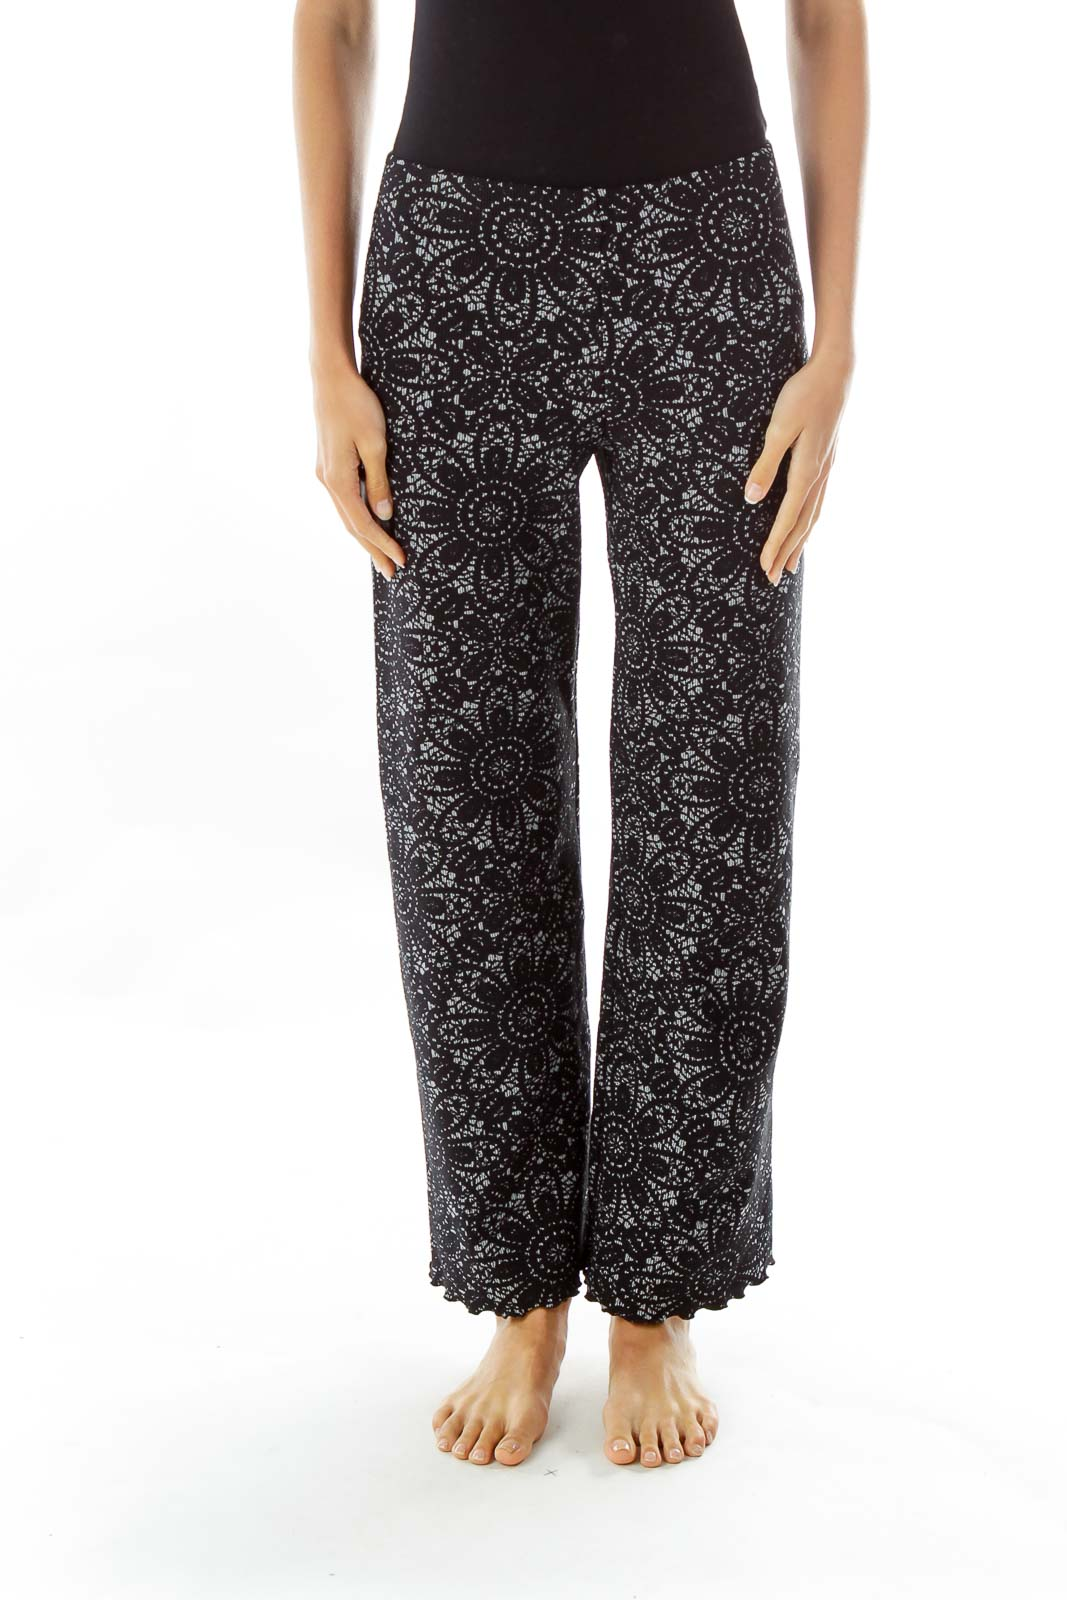 Black Gray Flower Print Textured Stretch Pants Front